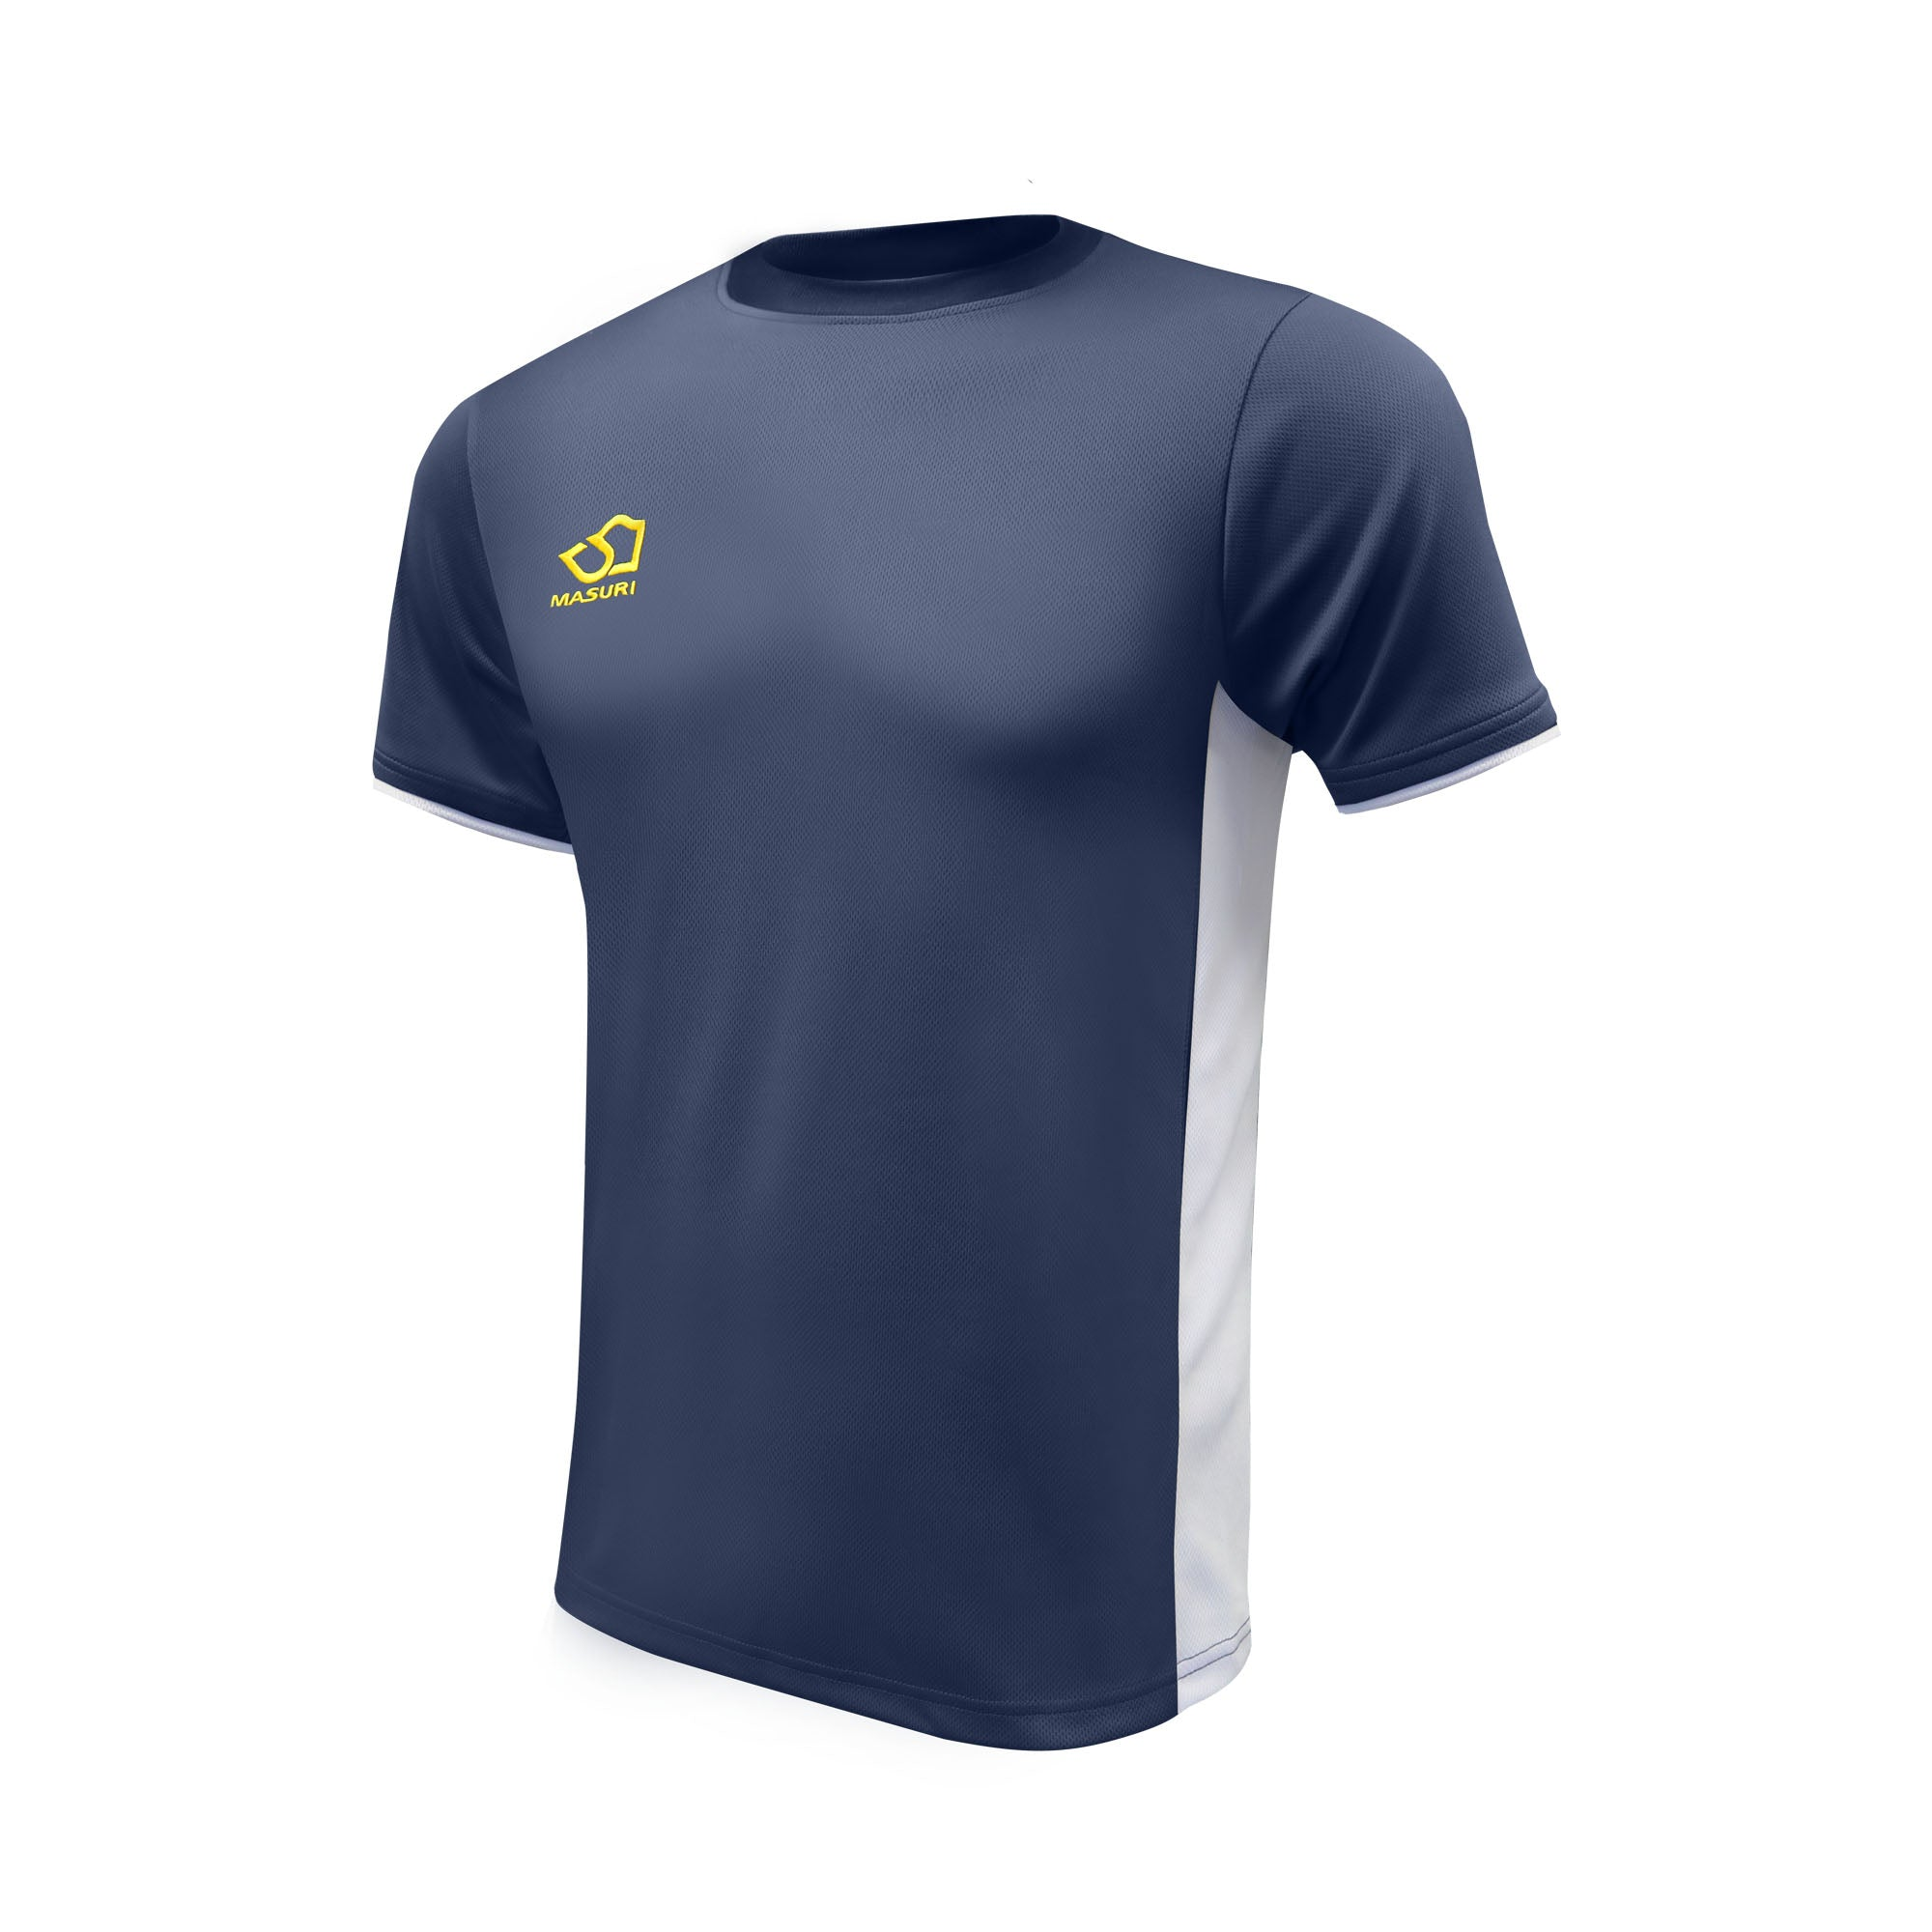 MENS MASURI TRAINING T-SHIRT - TRADE ACCOUNTS